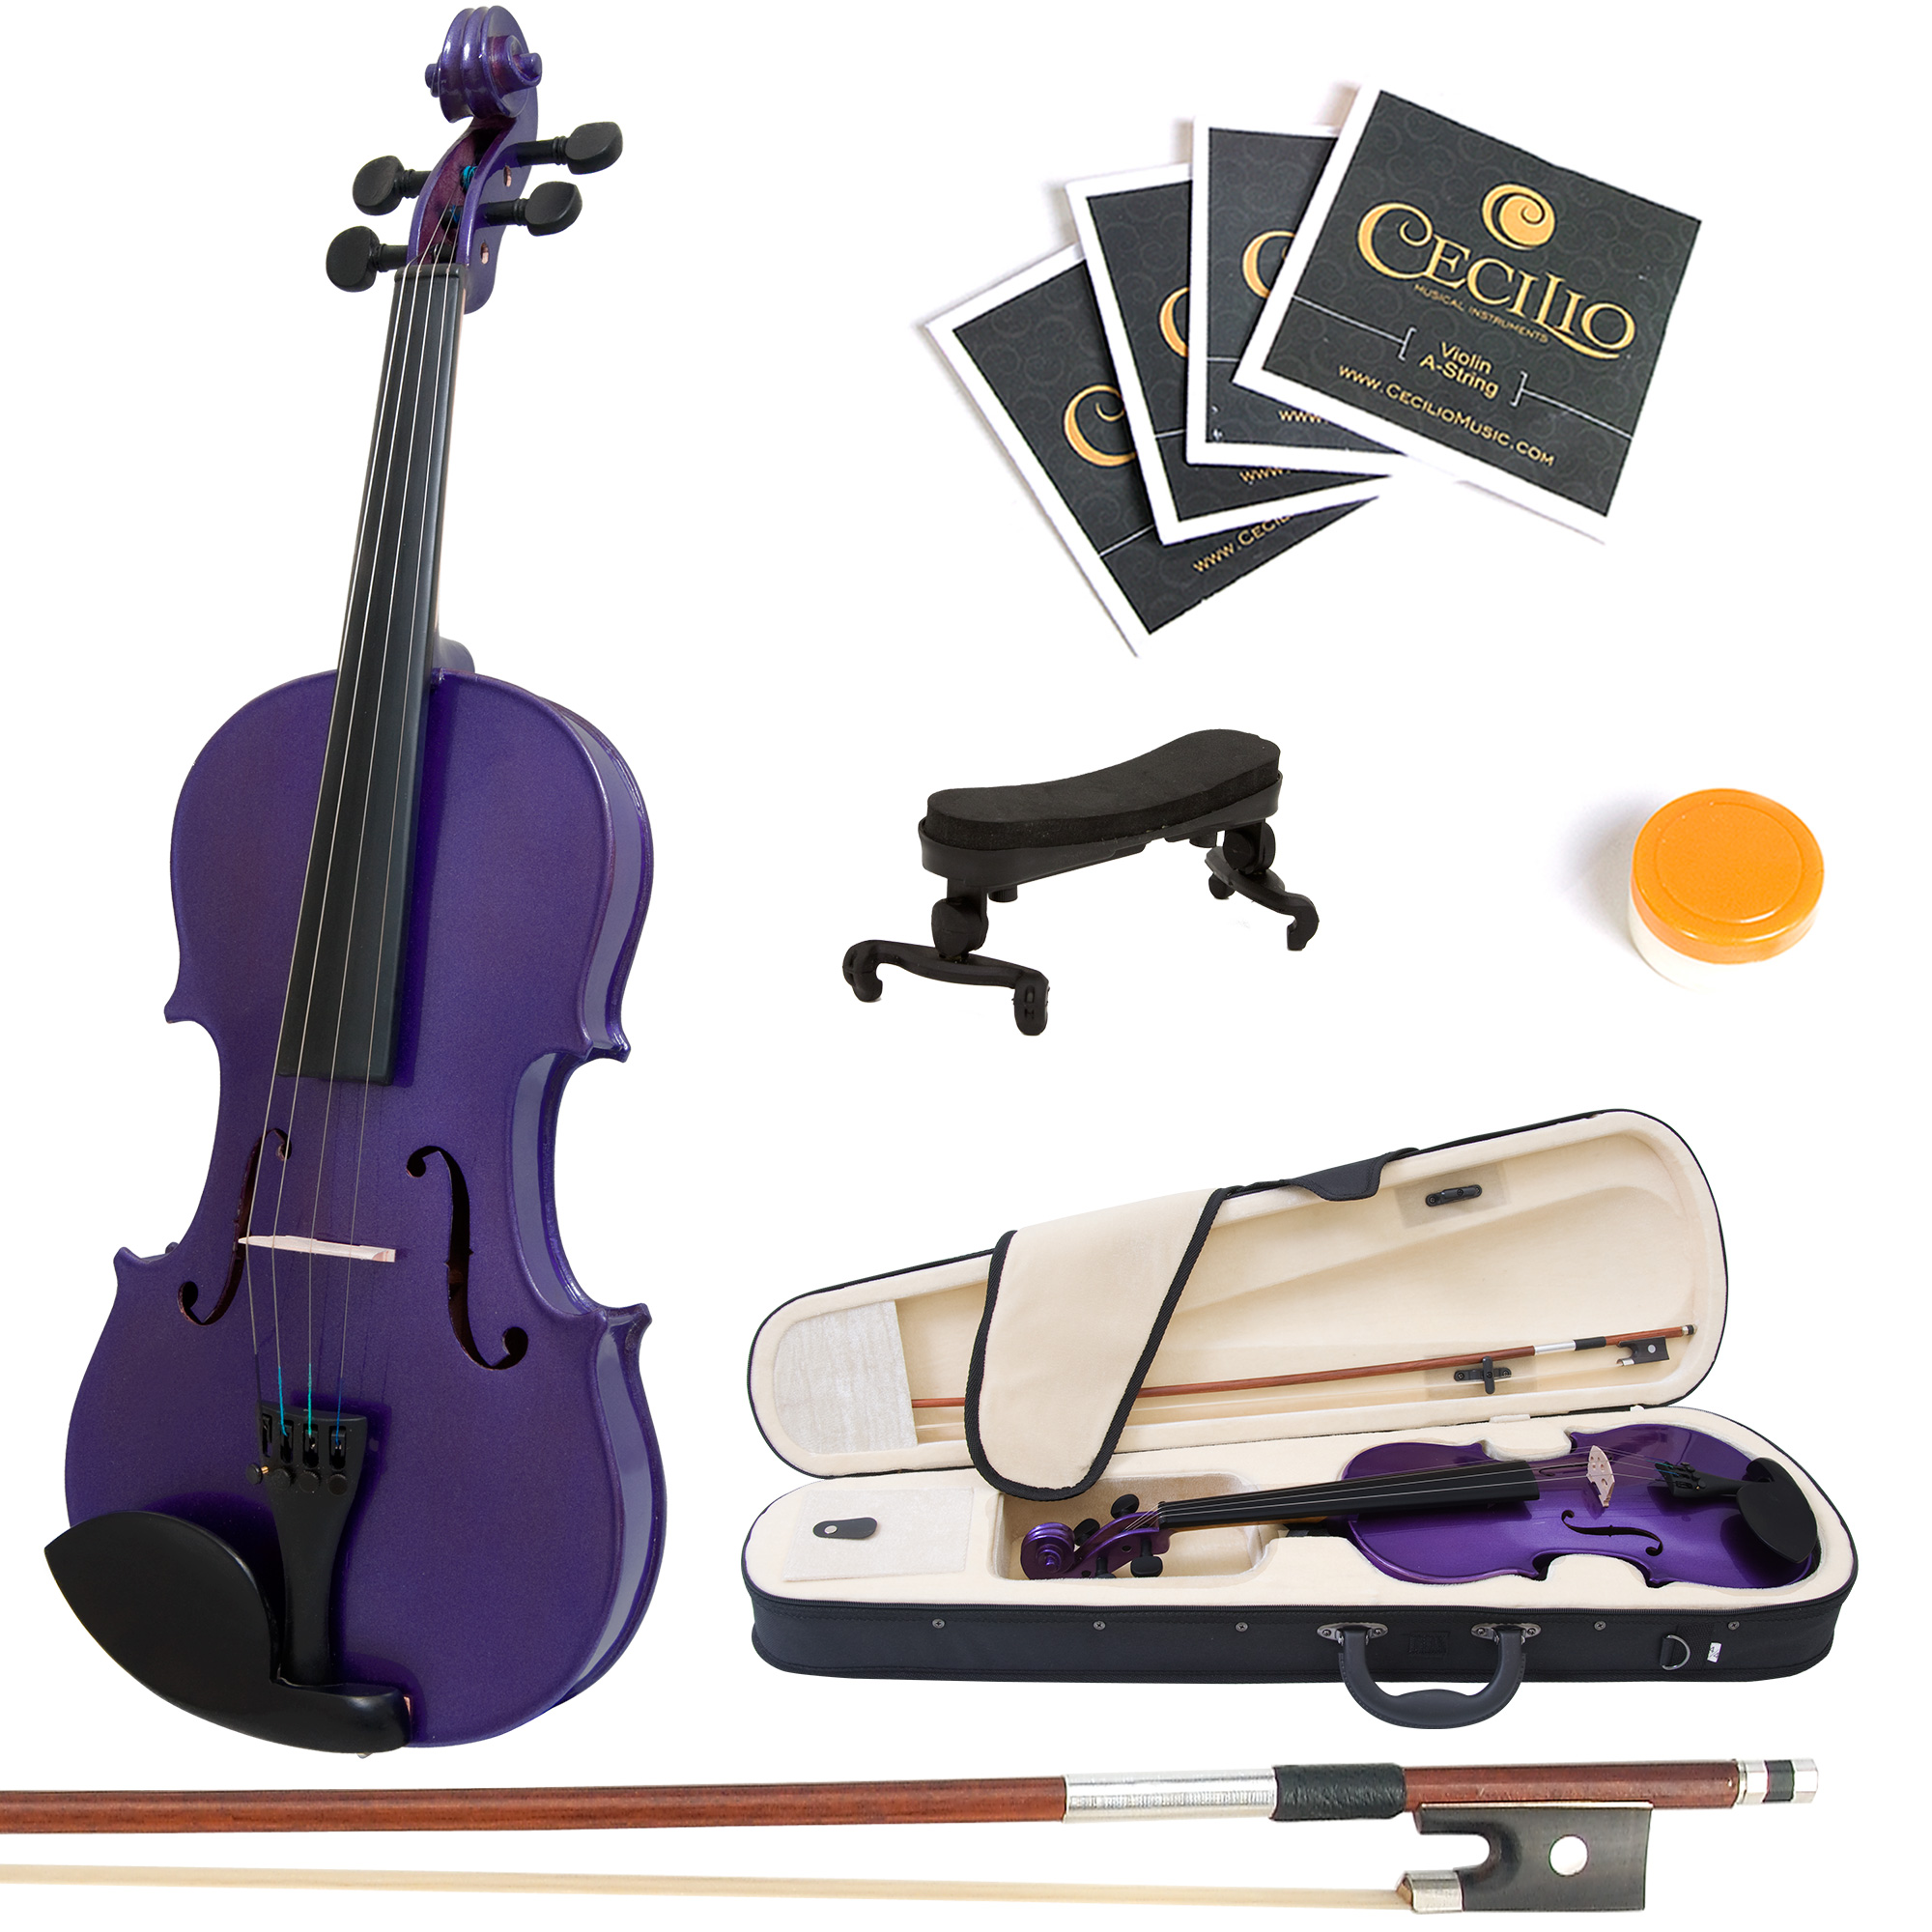 Mendini by Cecilio Size 1/8 MV-Purple Handcrafted Solid Wood Violin with 1 Year Warranty, Shoulder Rest, Bow, Rosin, Extra Set Strings, 2 Bridges & Case, Metallic Purple